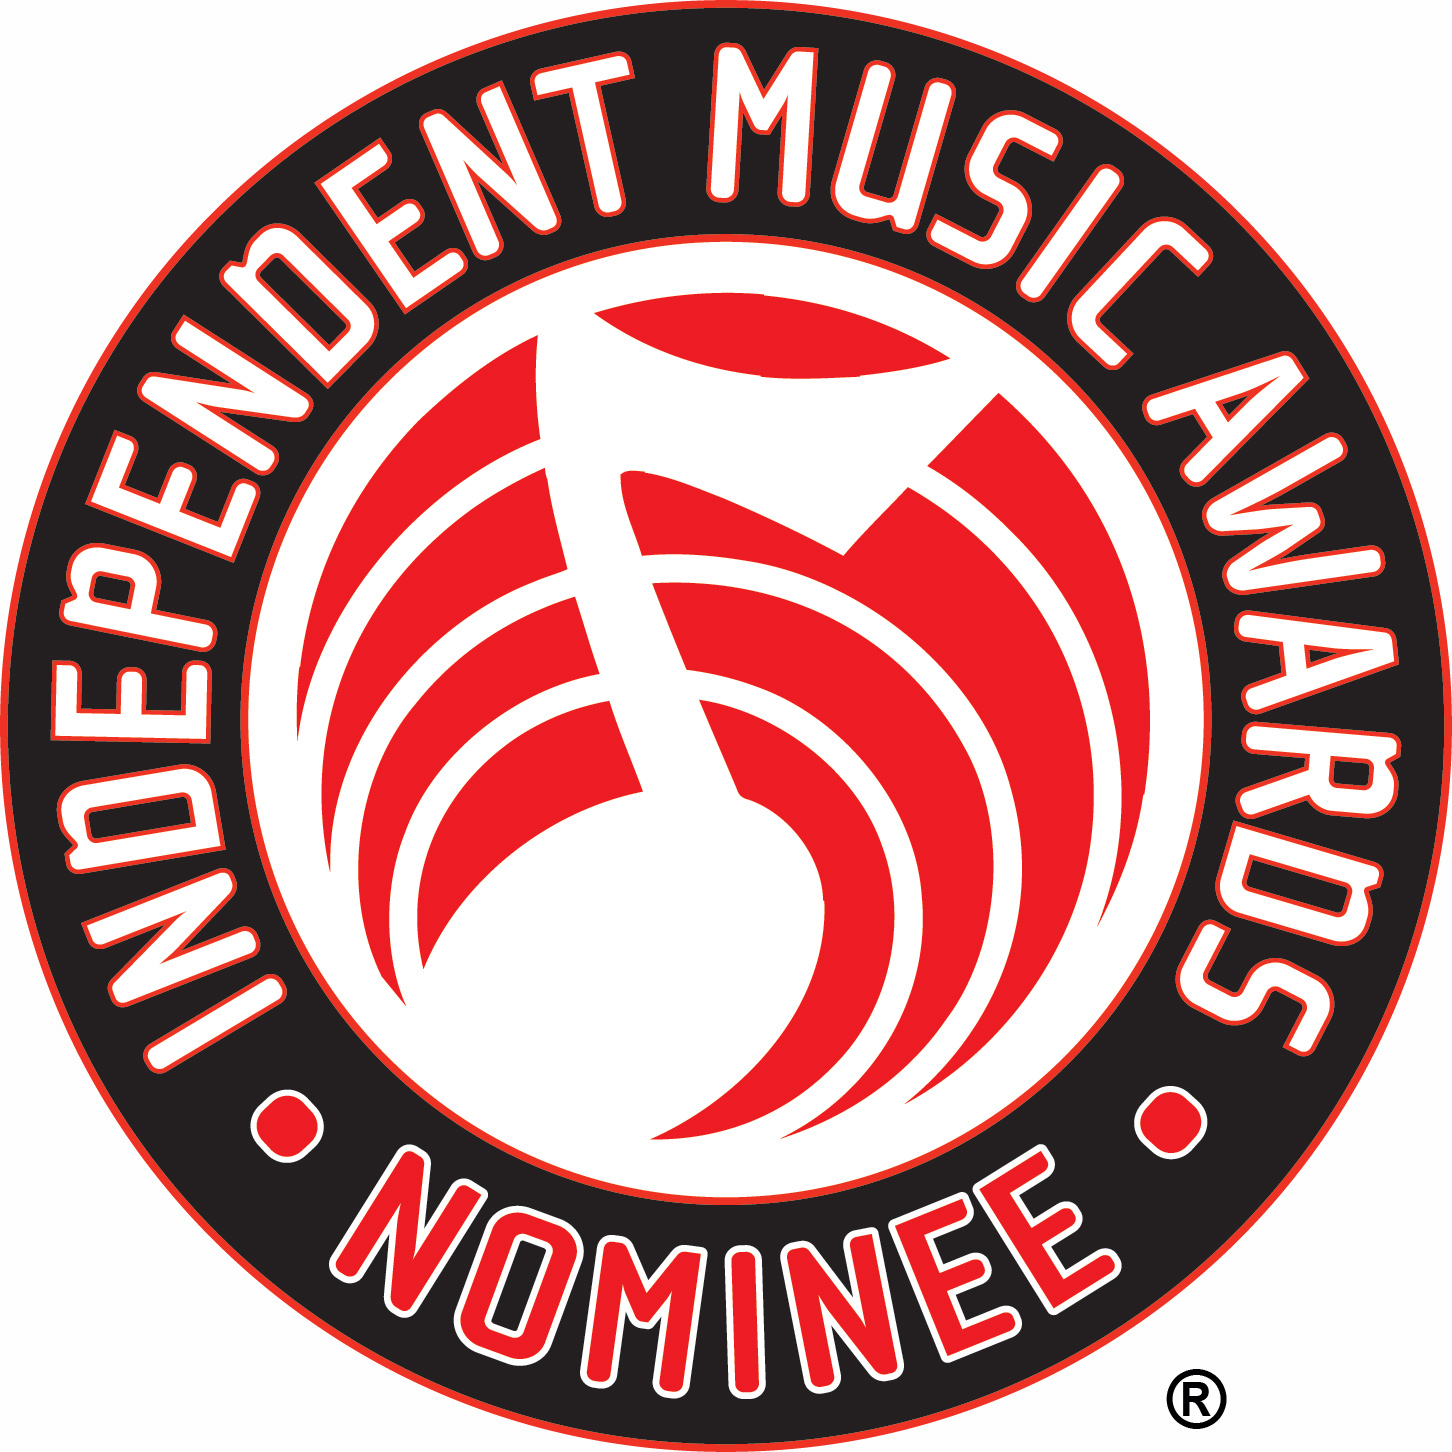 Independent Music Award Nominee Badge